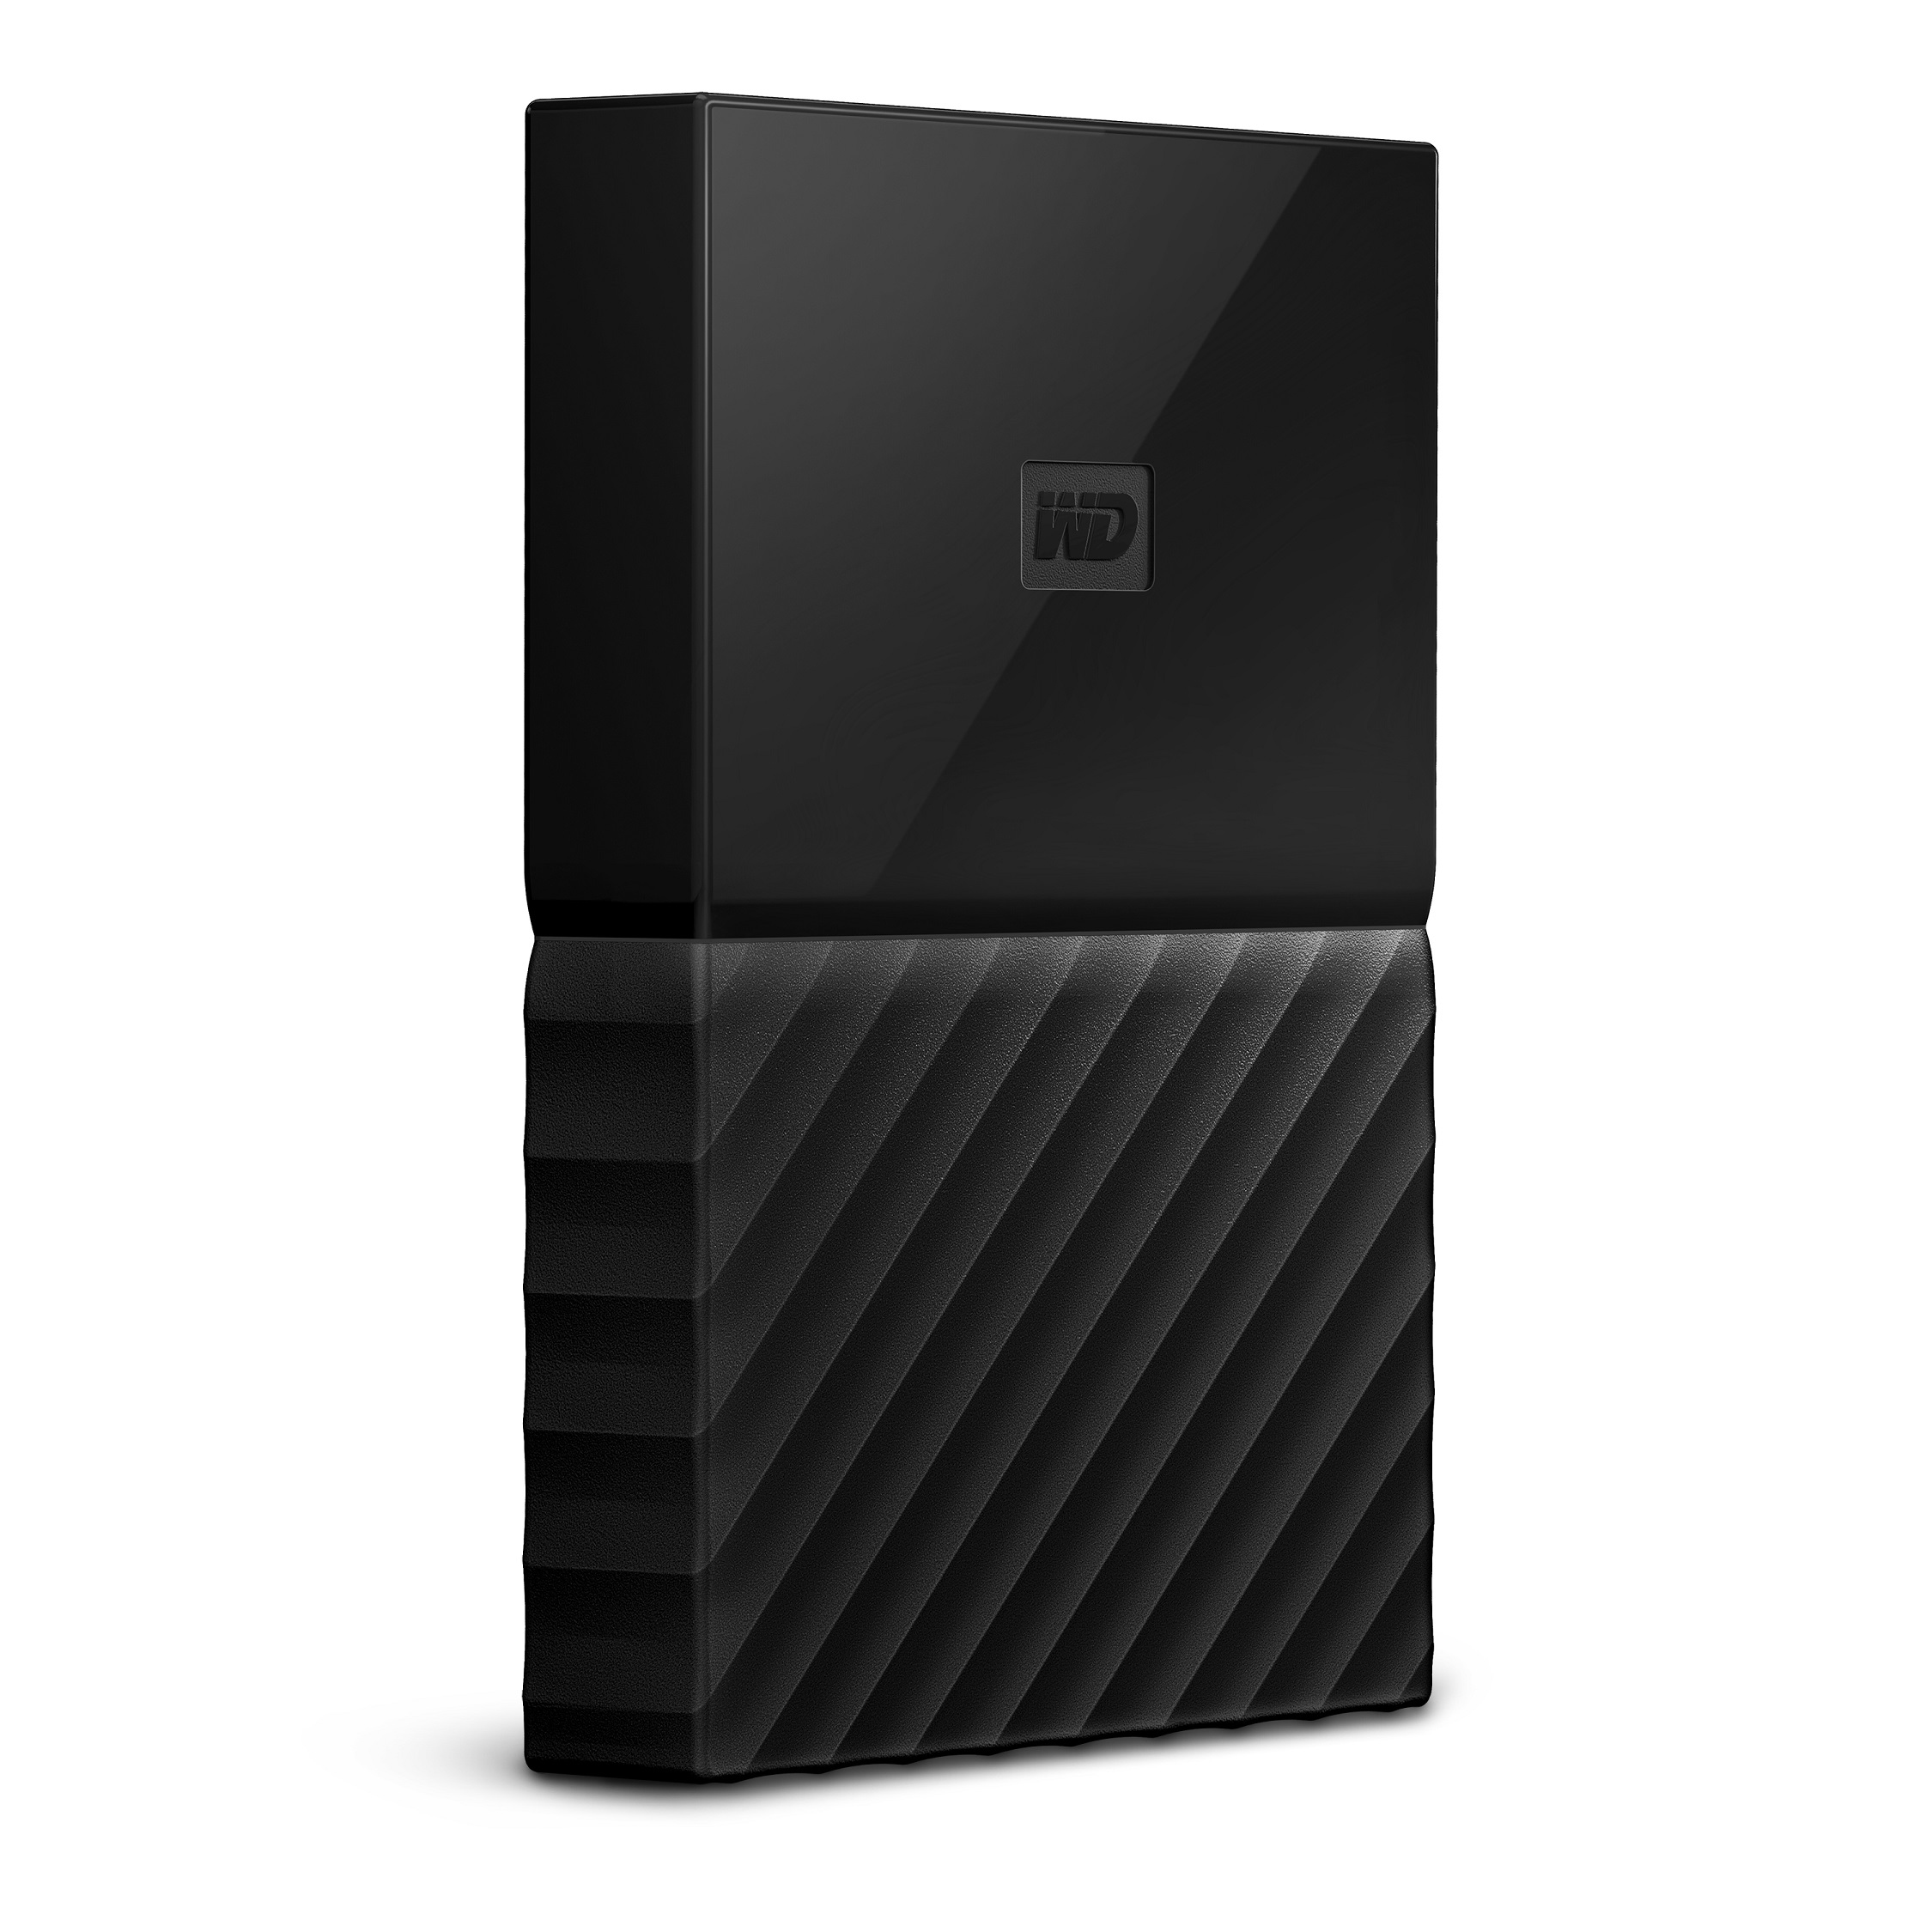 HDD.2TB External USB 3.0 Black